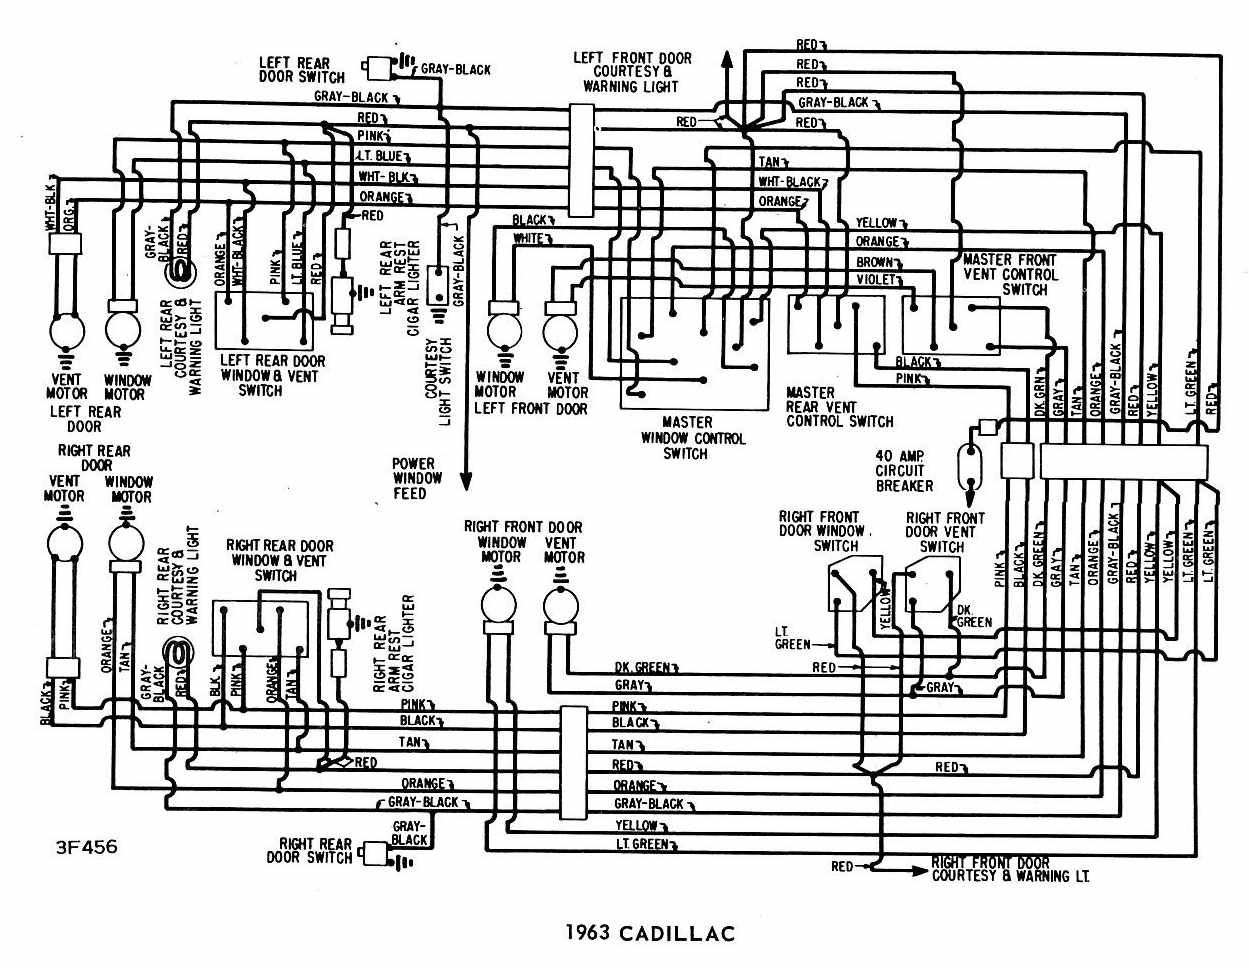 medium resolution of 1968 cadillac ac wiring diagram wiring diagram user 1968 cadillac ac wiring diagram